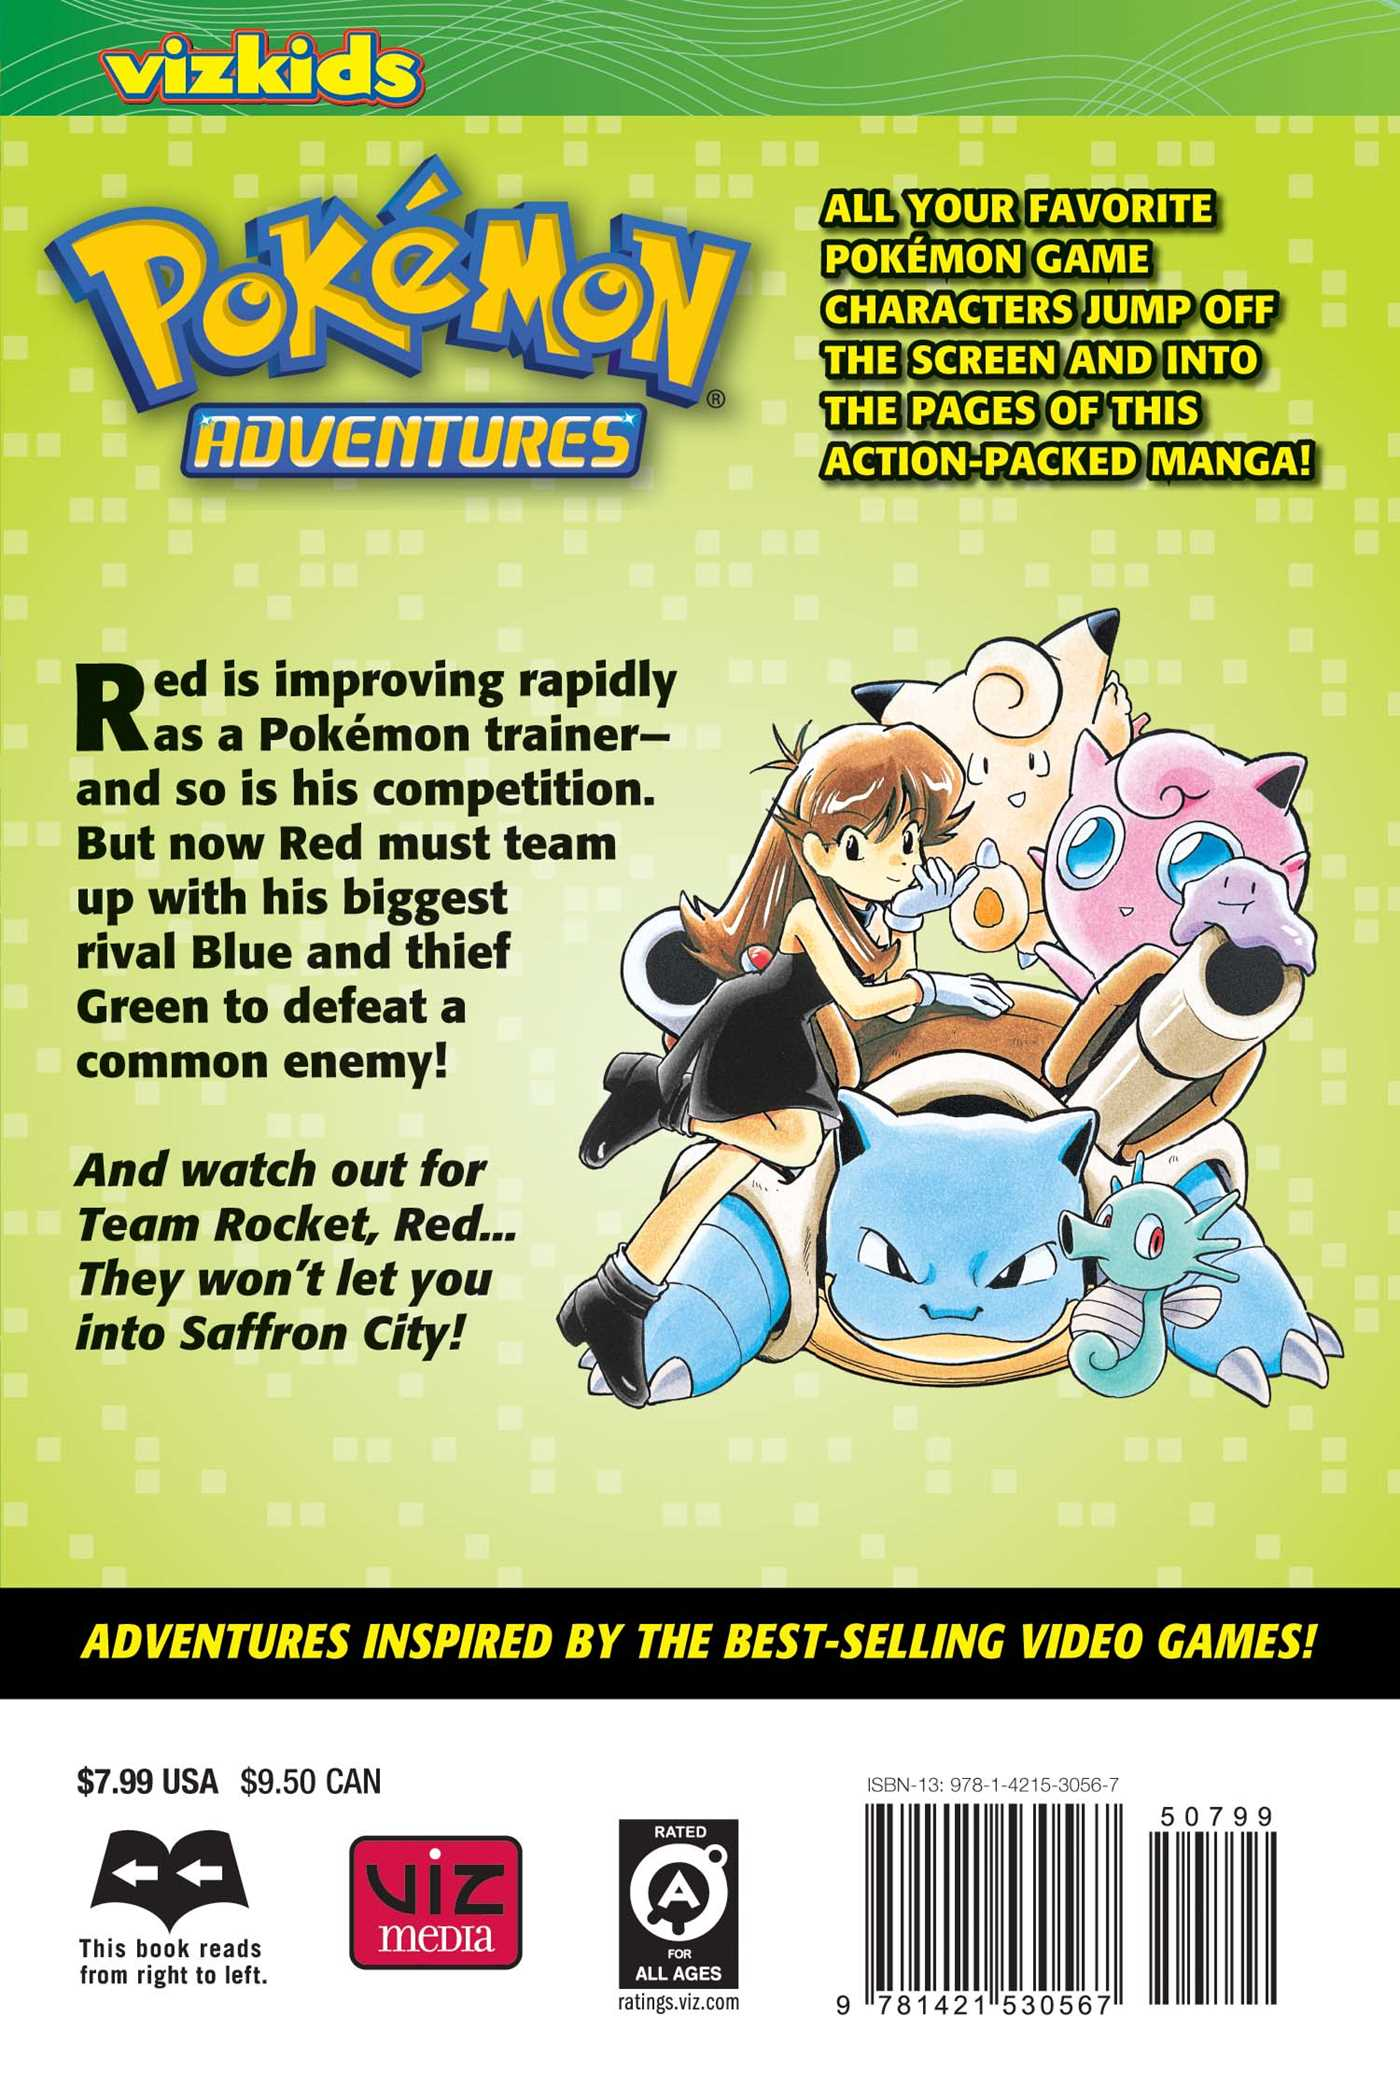 Pokemon adventures vol 3 2nd edition 9781421530567 hr back